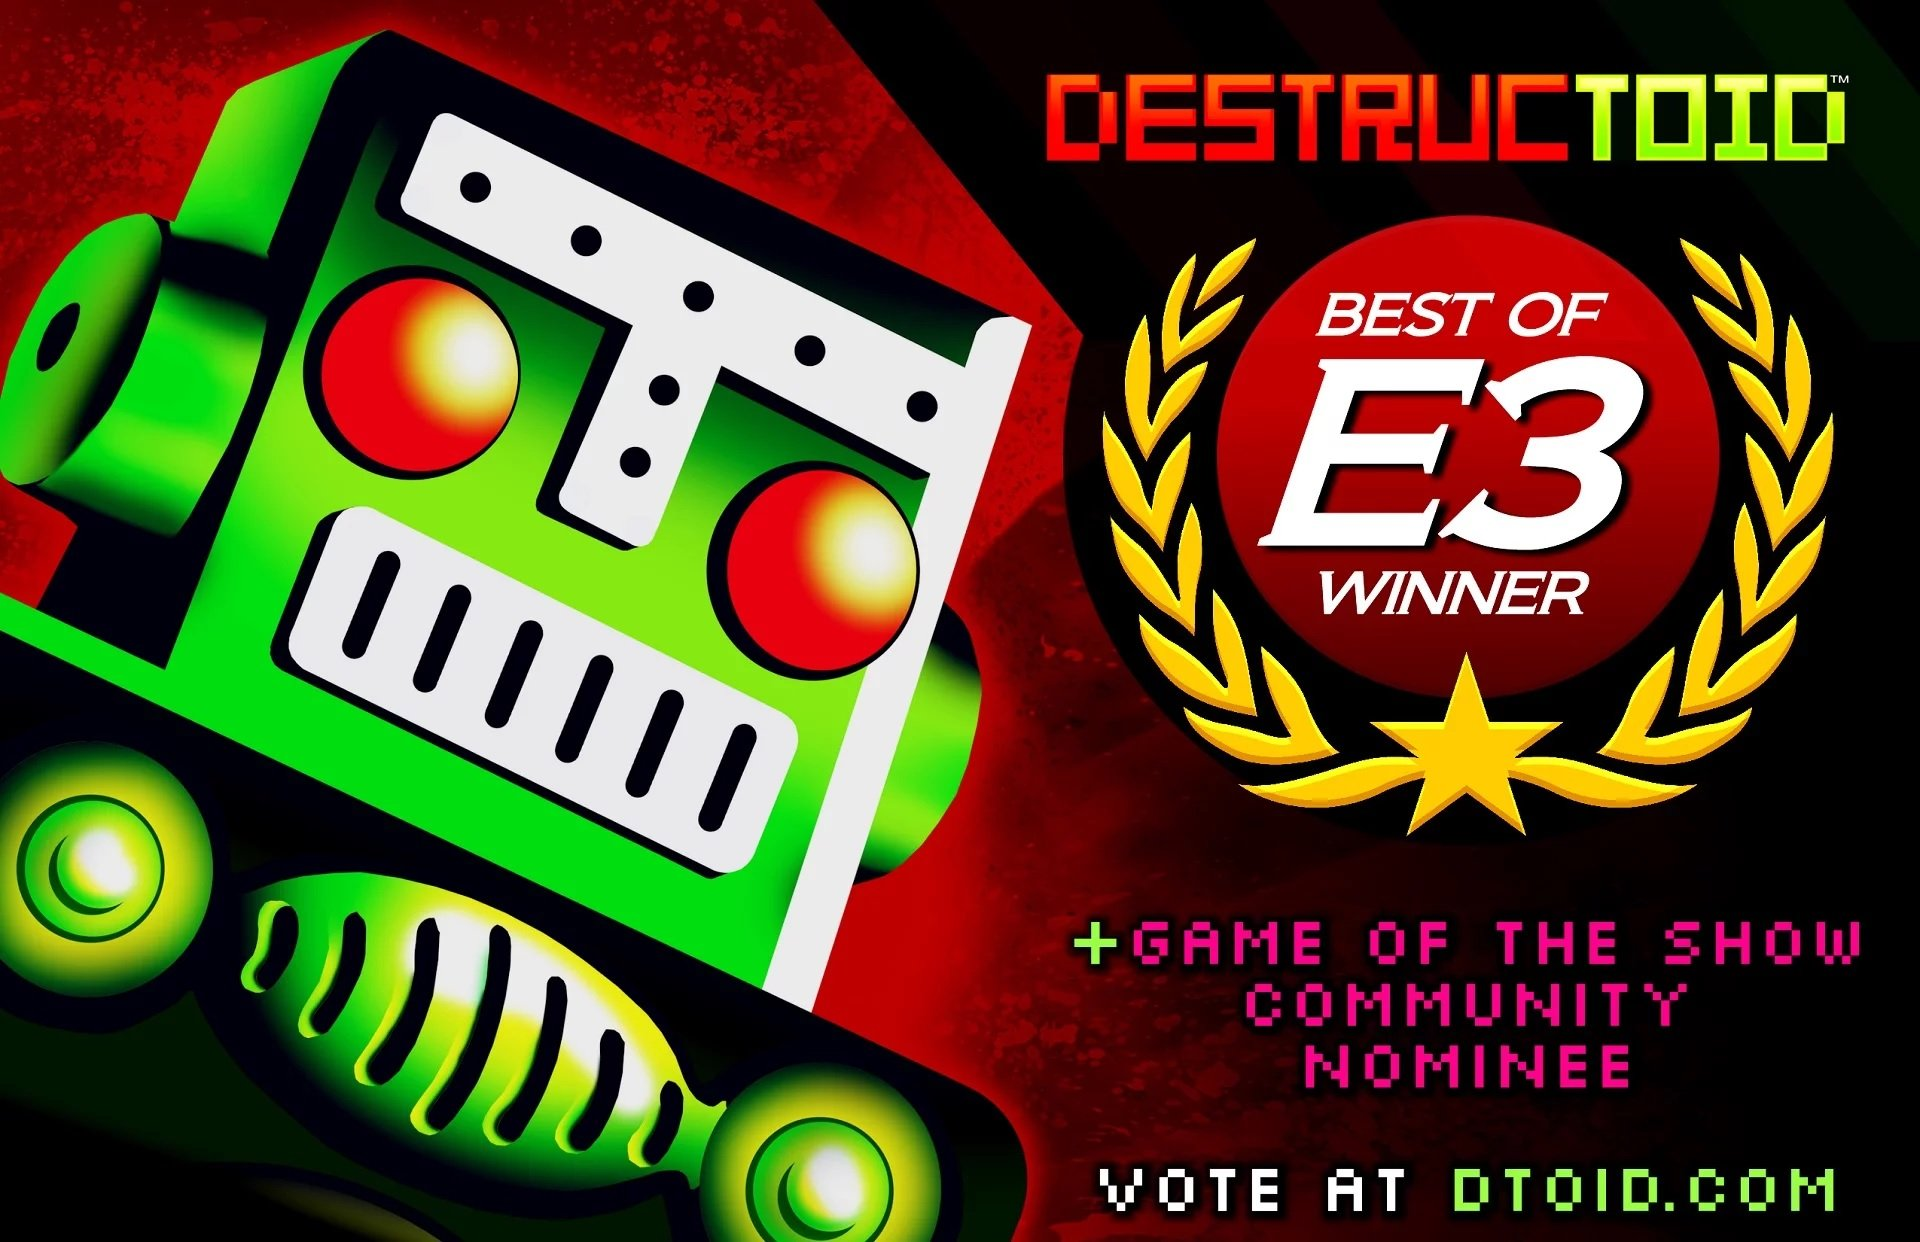 Vote now for the Destructoid Community E3 2019 Game of Show Award screenshot